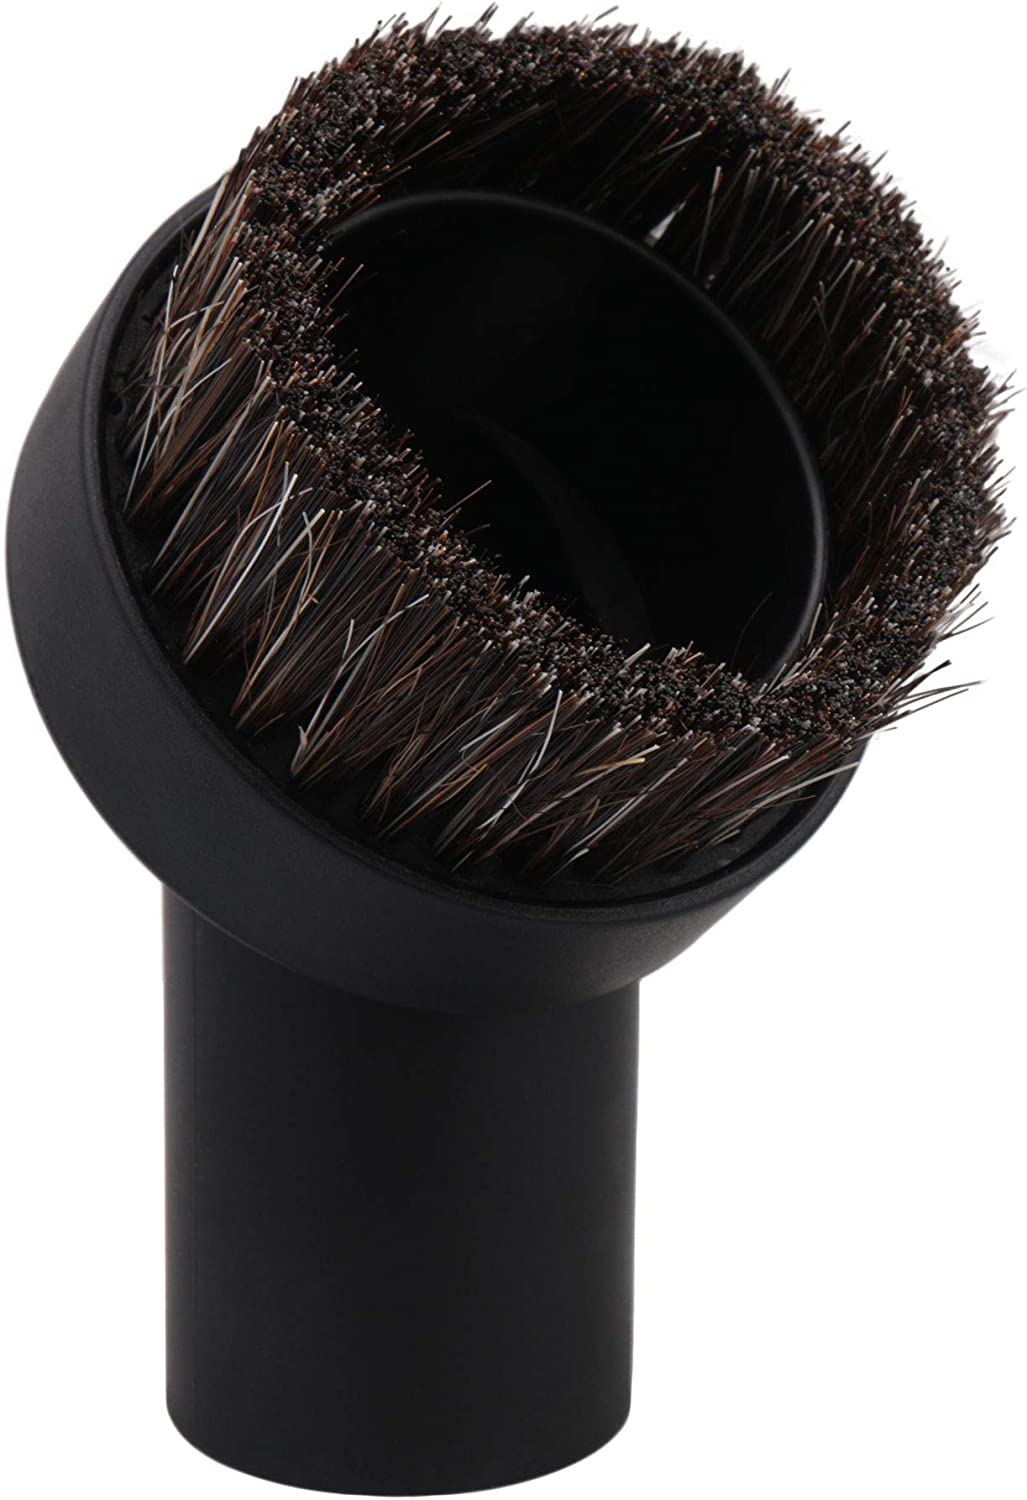 2021 spring and summer new ID 32mm Black Horse Ranking TOP11 Hair Plastic Round Brush Clea Vacuum ing for